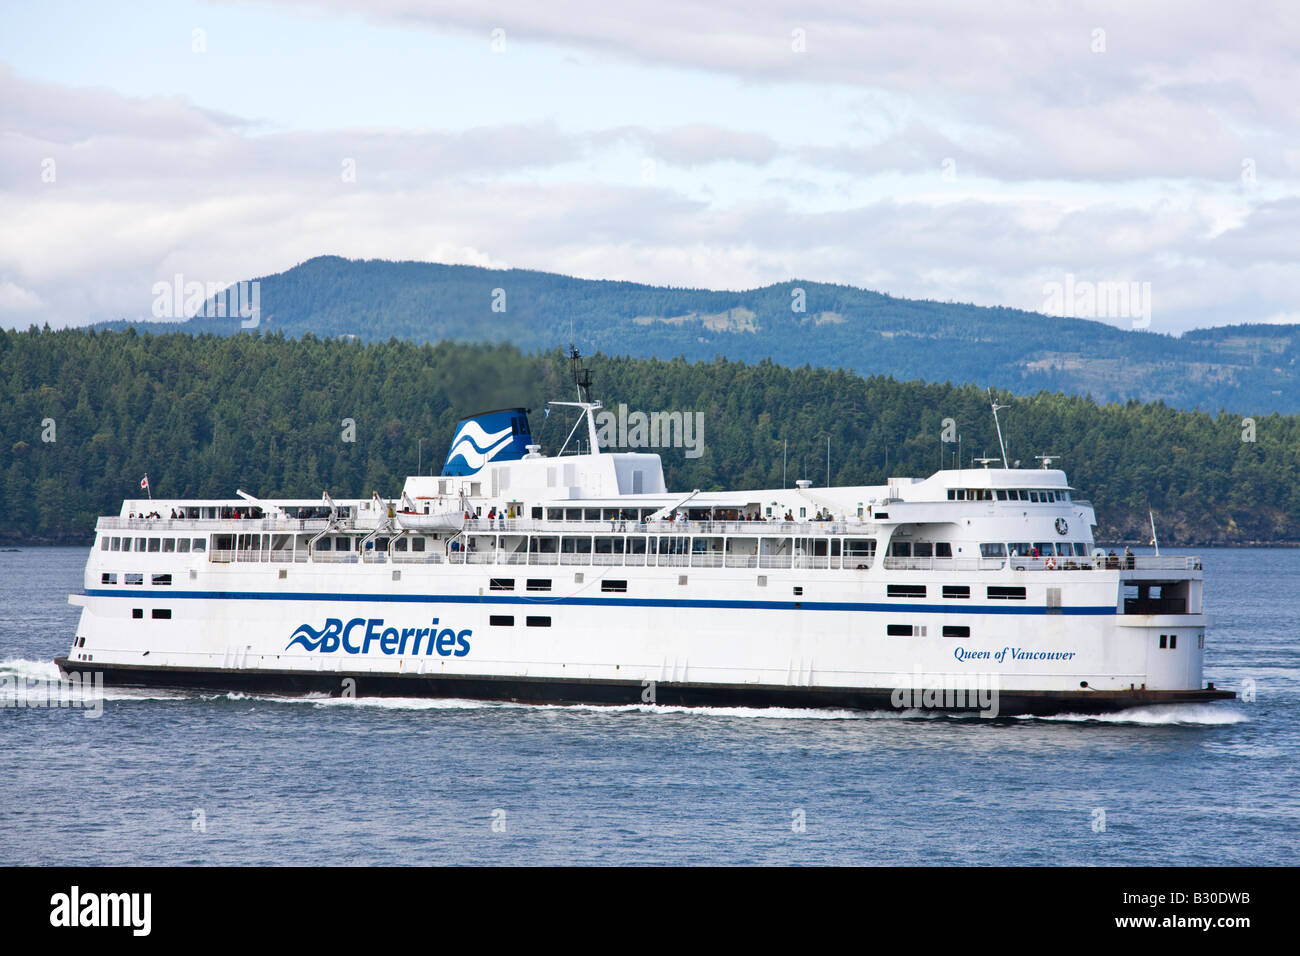 Queen of Vancouver ferry boat en route from to Victoria to Vancouver, from Swartz Bay to Tsawwassen - Stock Image